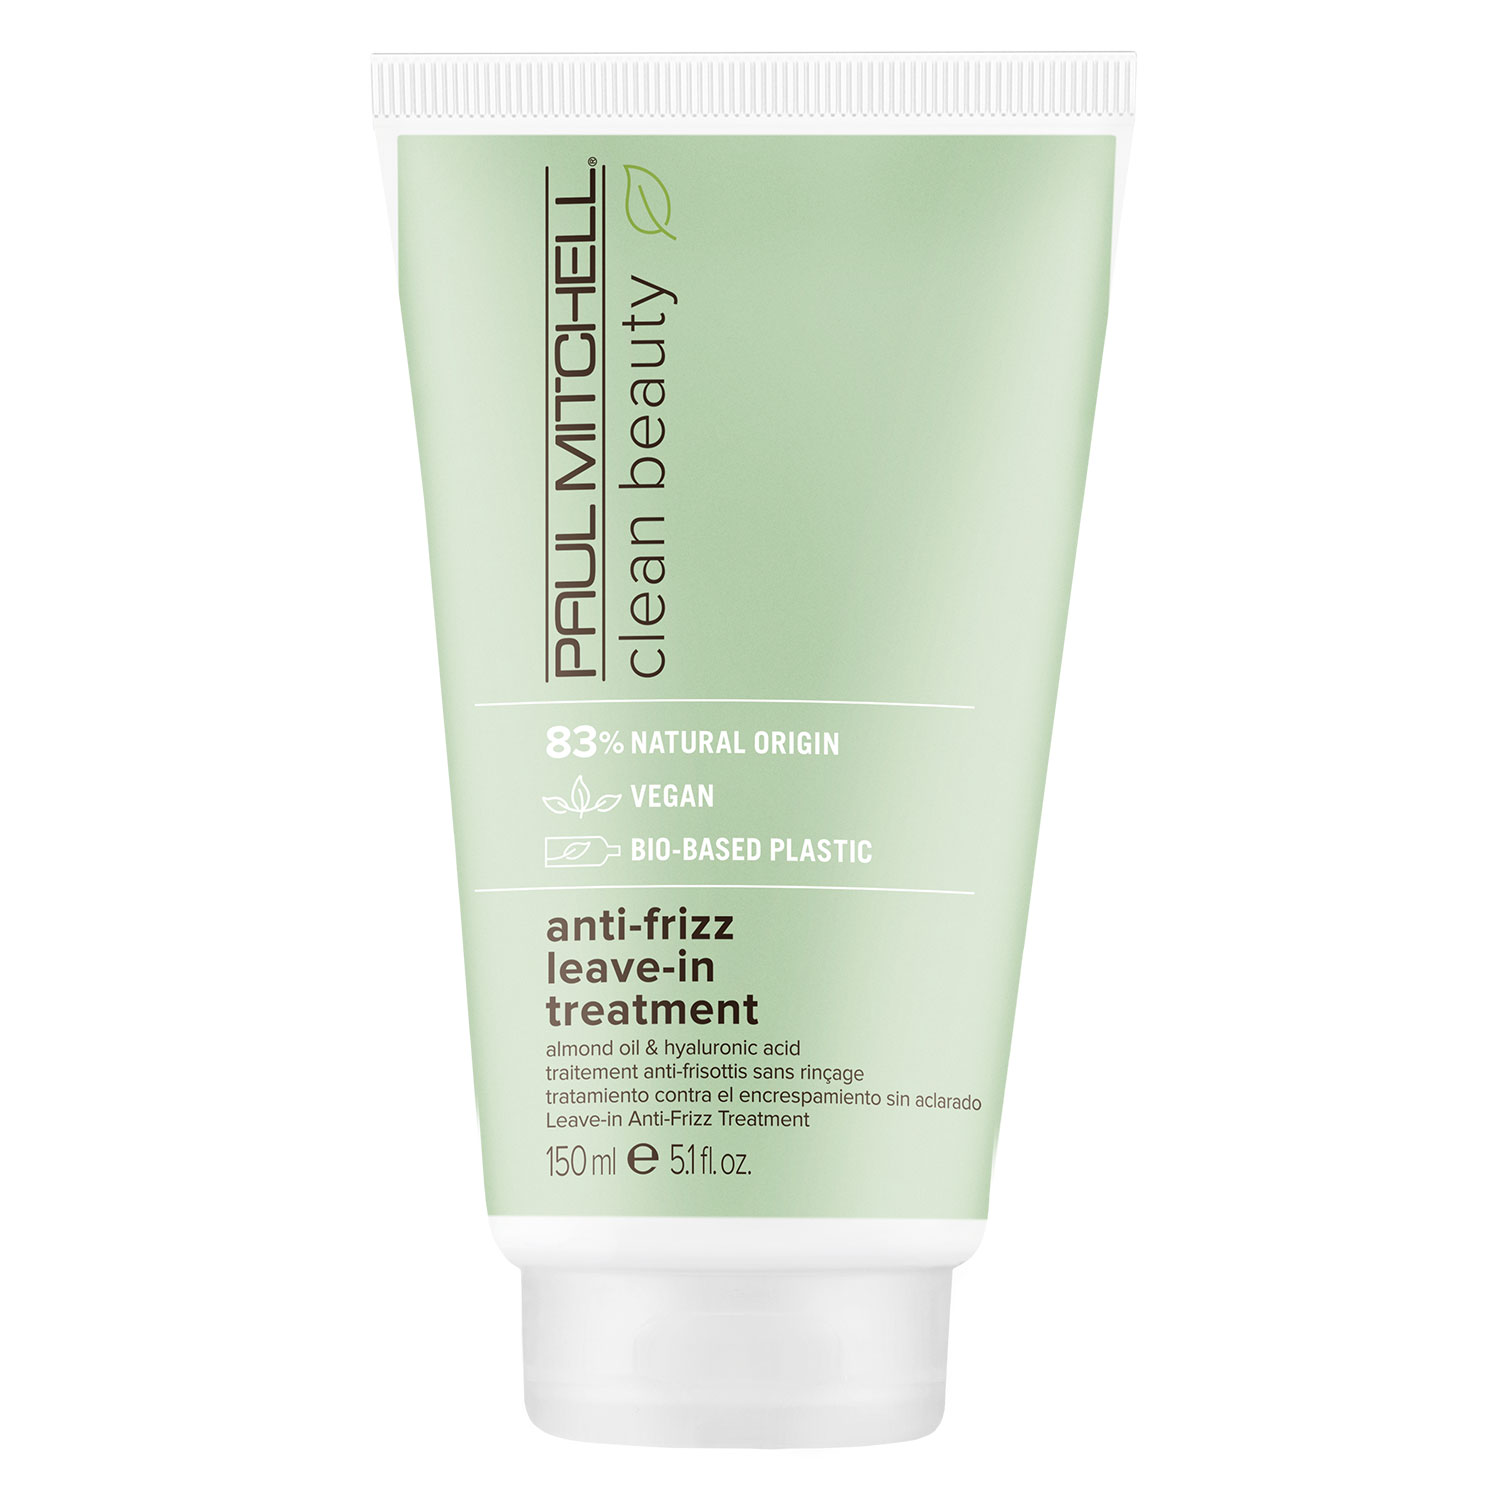 Paul Mitchell Clean Beauty - Anti-Frizz Leave-In Treatment